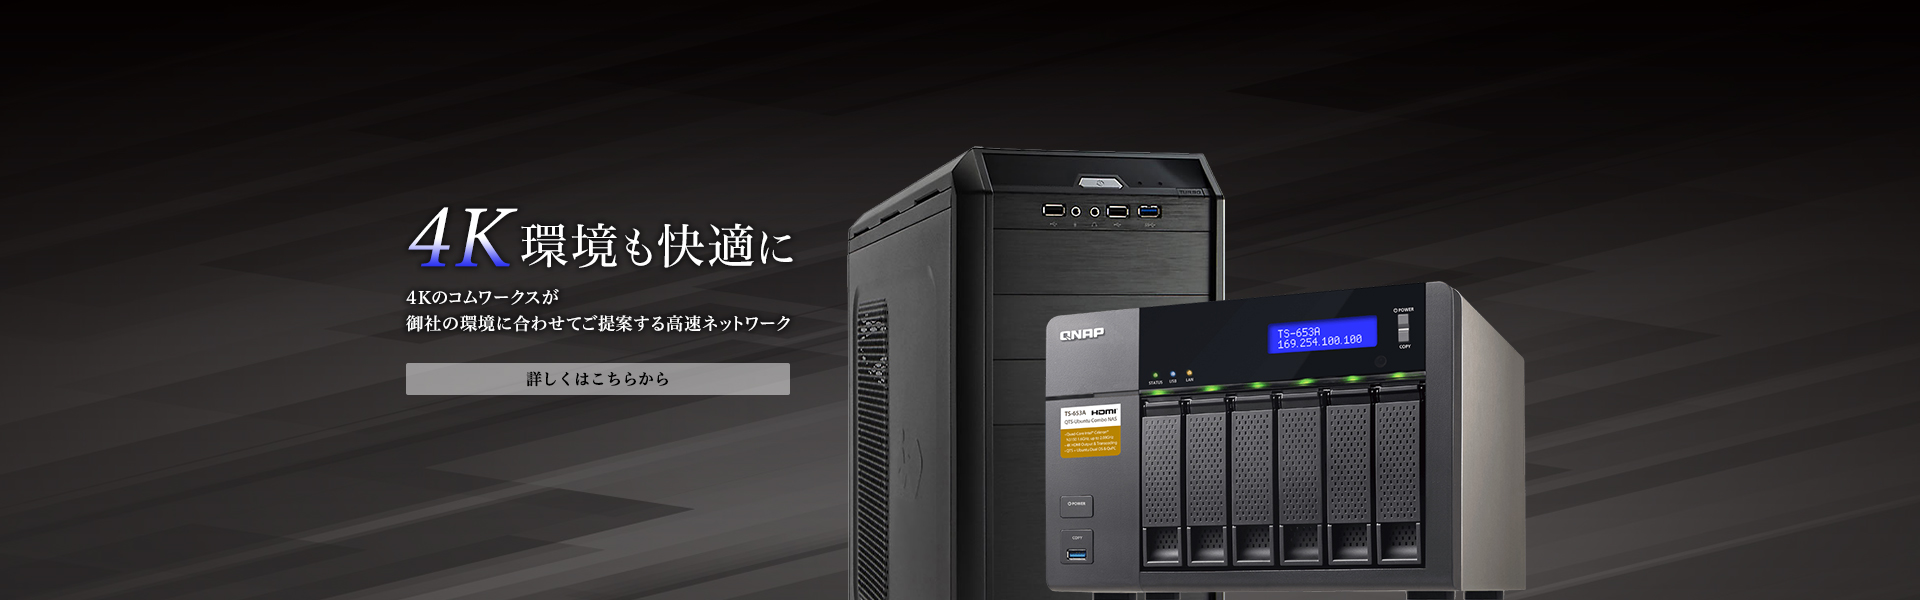 4K編集対応ノンリニア編集機 Comstation X